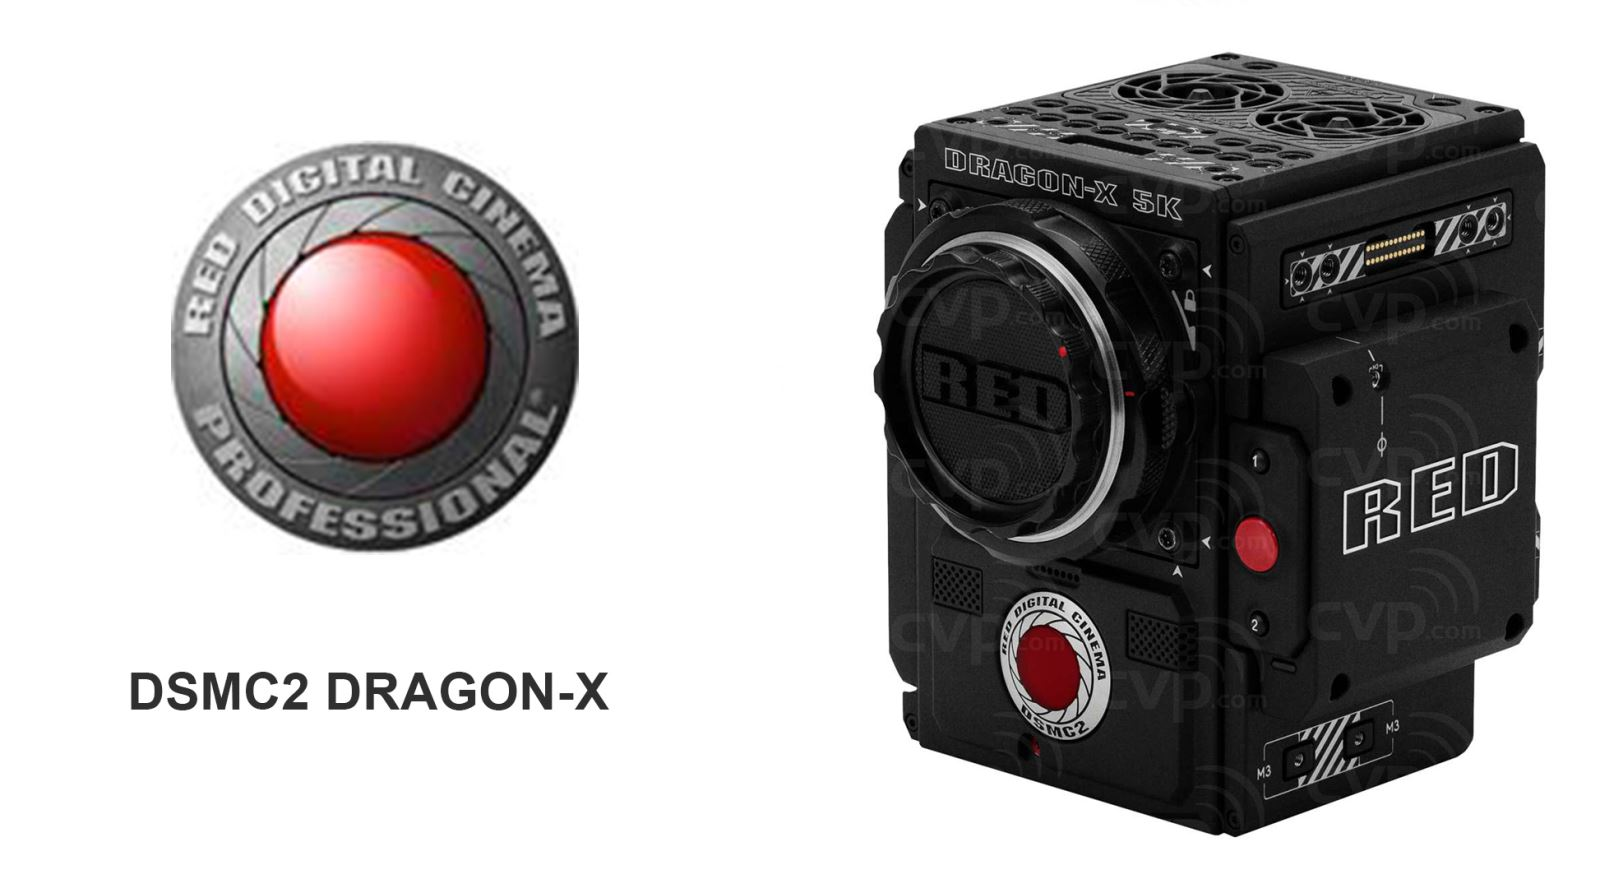 The Guild of Television Camera Professionals : RED Digital Cinema